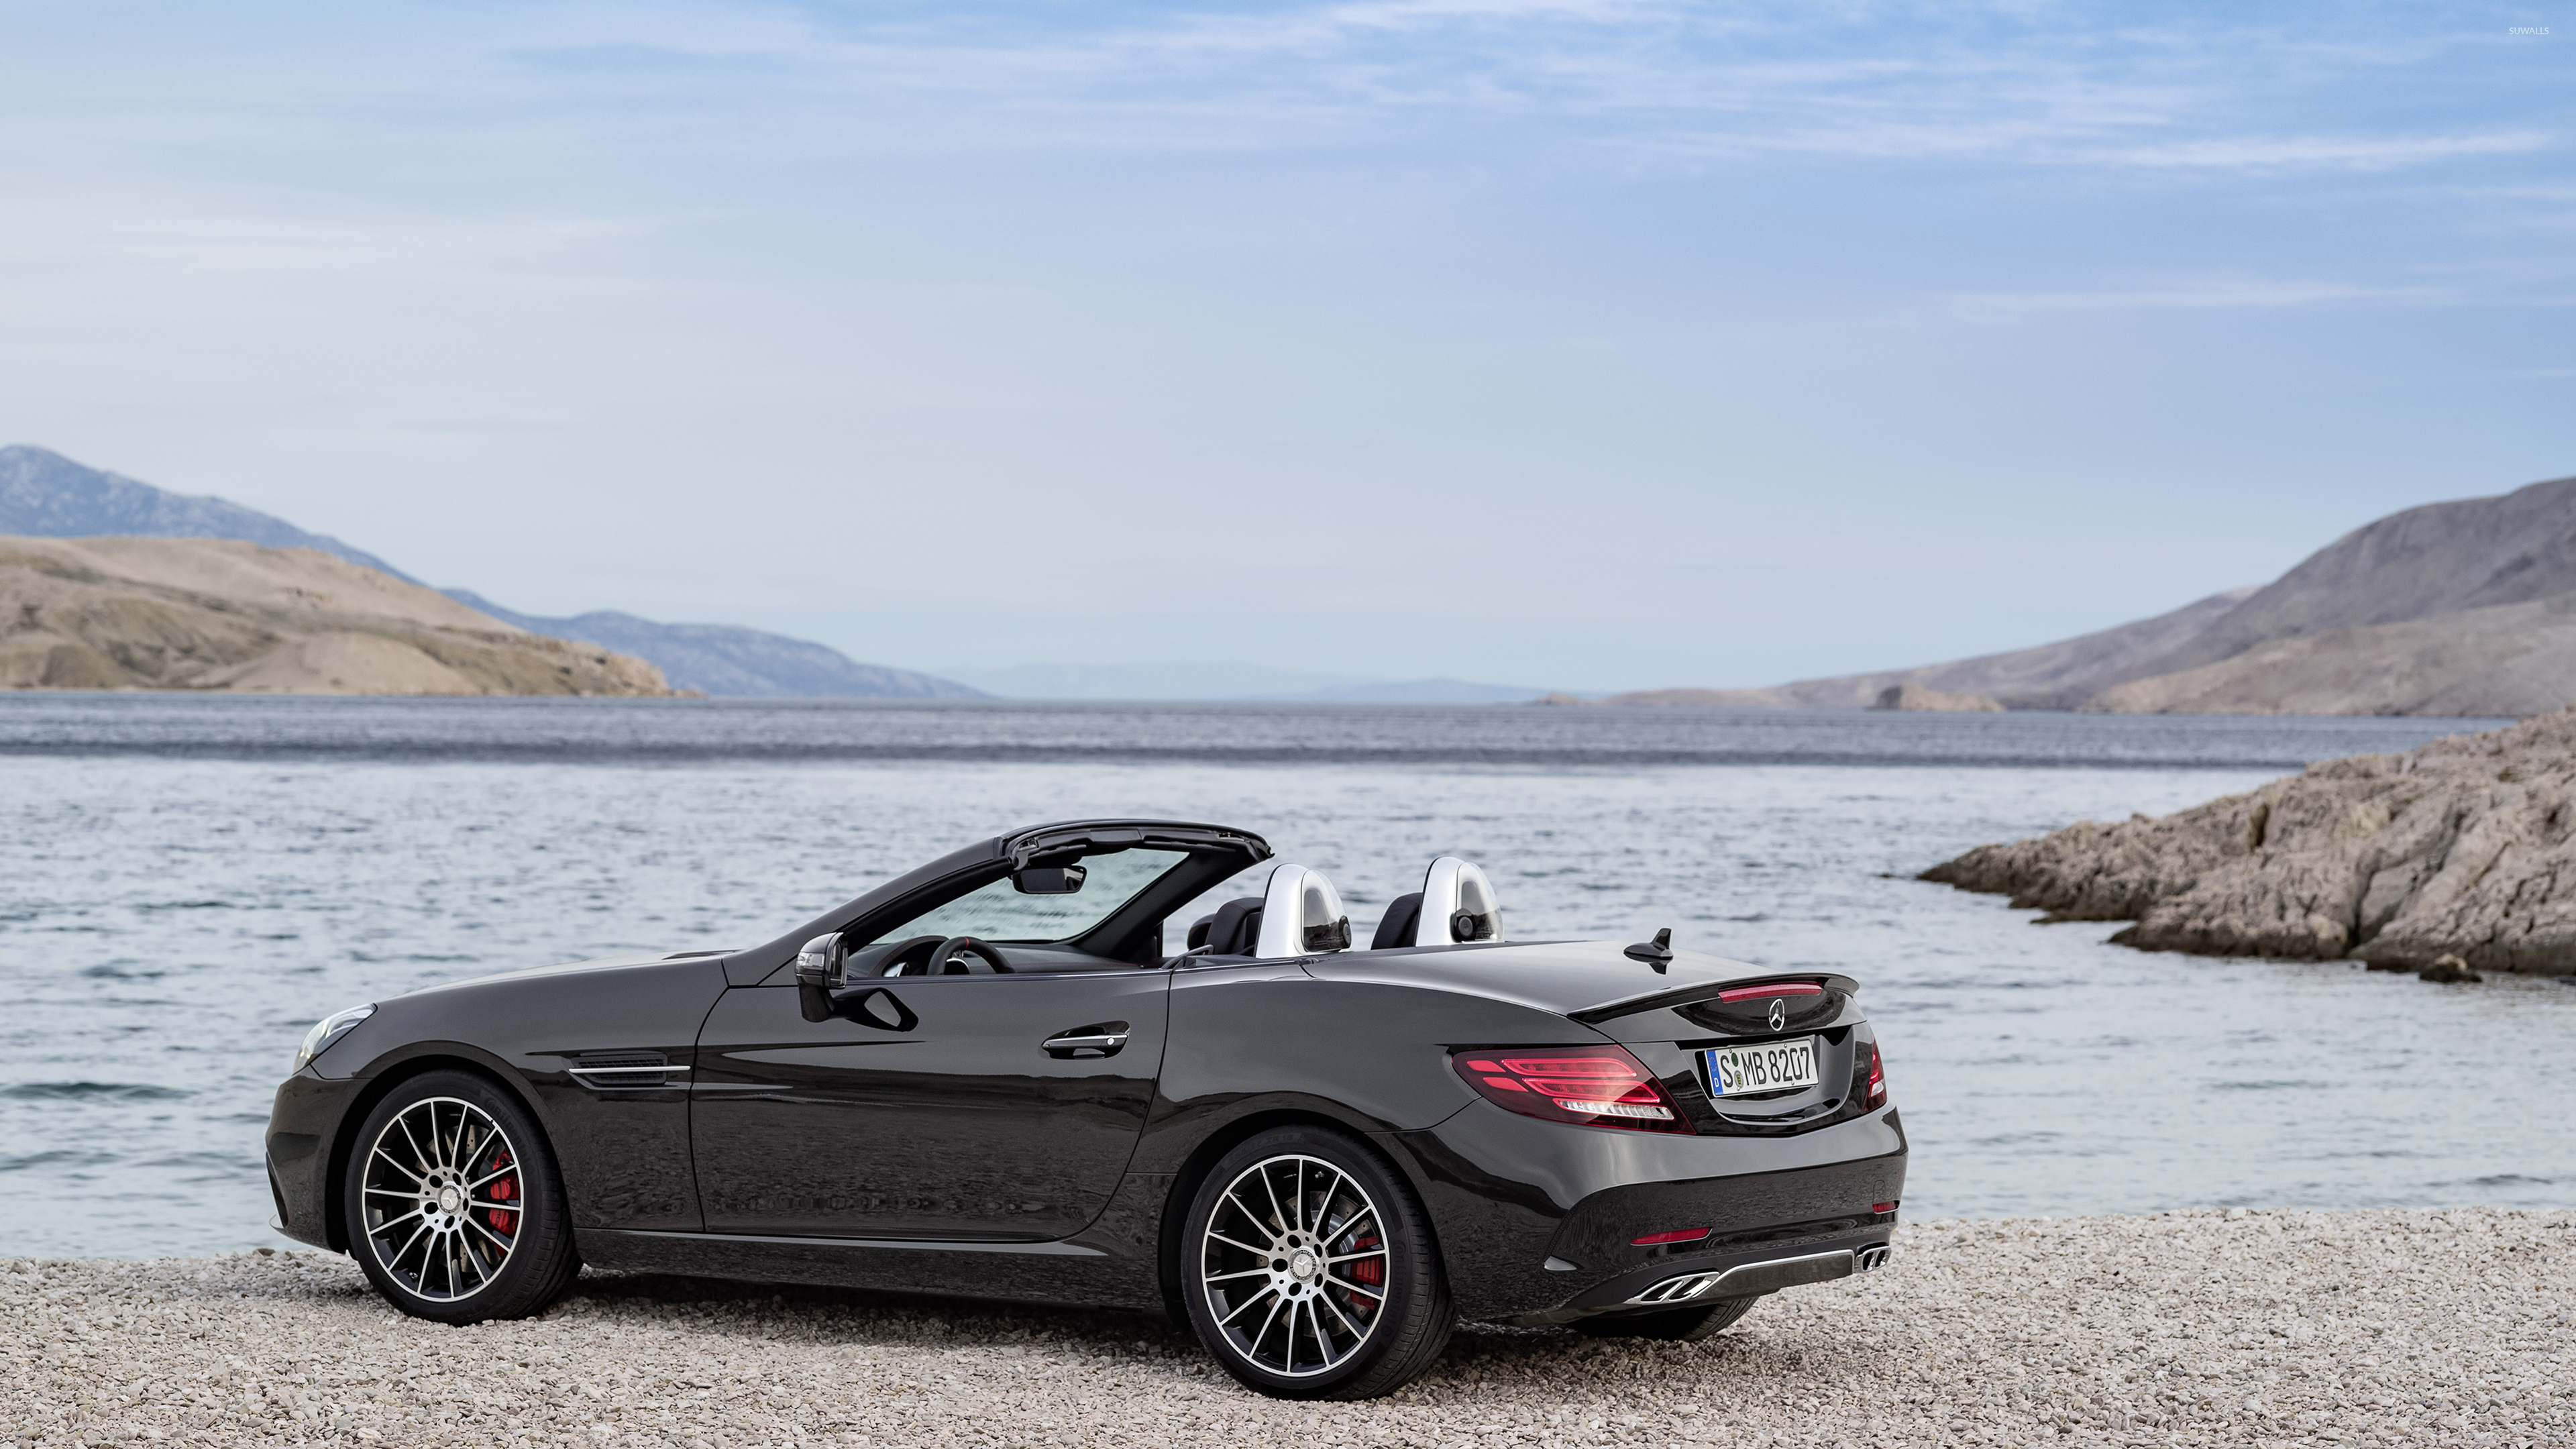 2017 mercedes amg slc 43 back side view wallpaper car wallpapers 53297. Black Bedroom Furniture Sets. Home Design Ideas